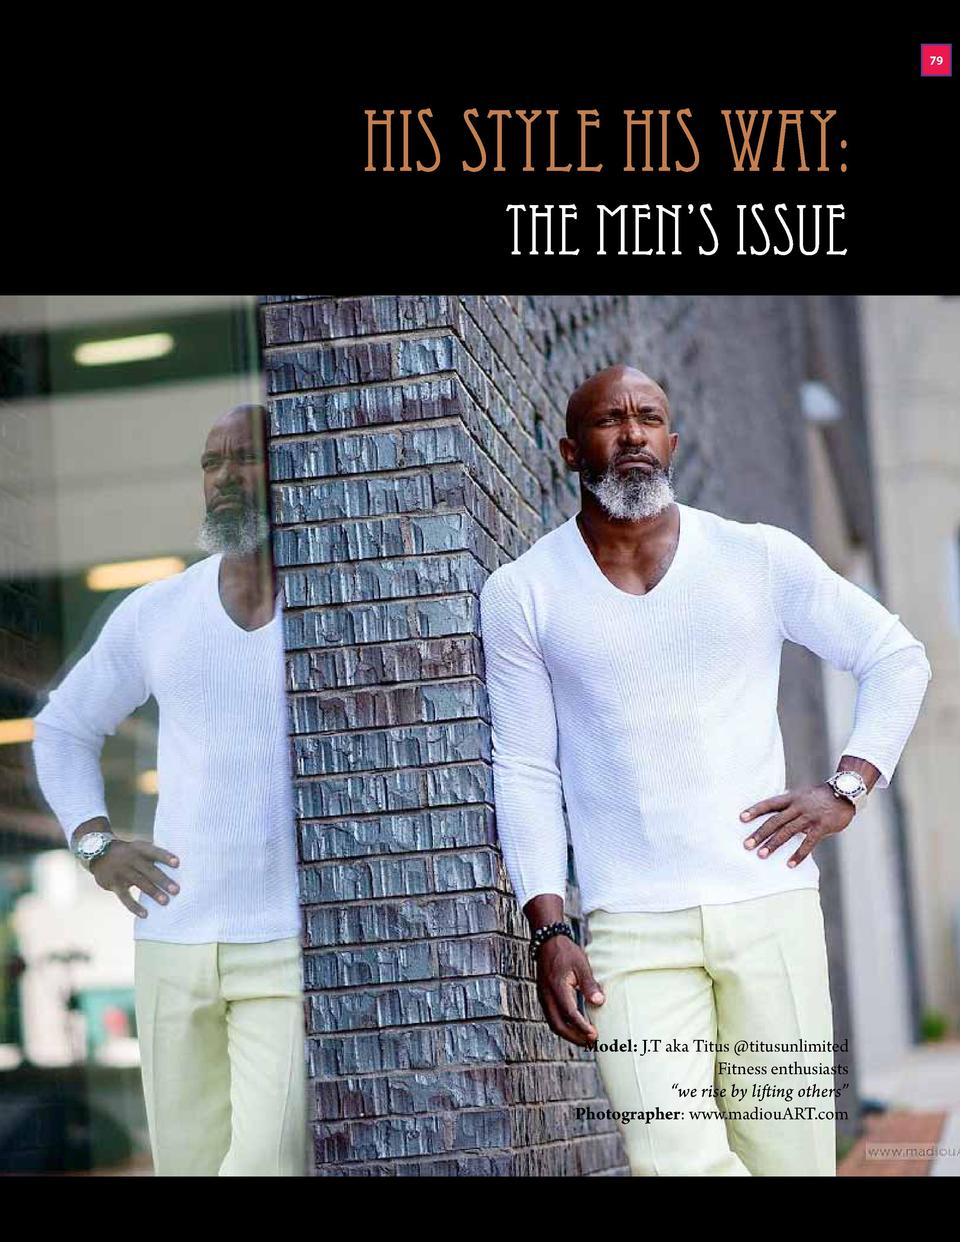 79  his style his way  the men   s issue  Model  J.T aka Titus  titusunlimited Fitness enthusiasts    we rise by lifting o...